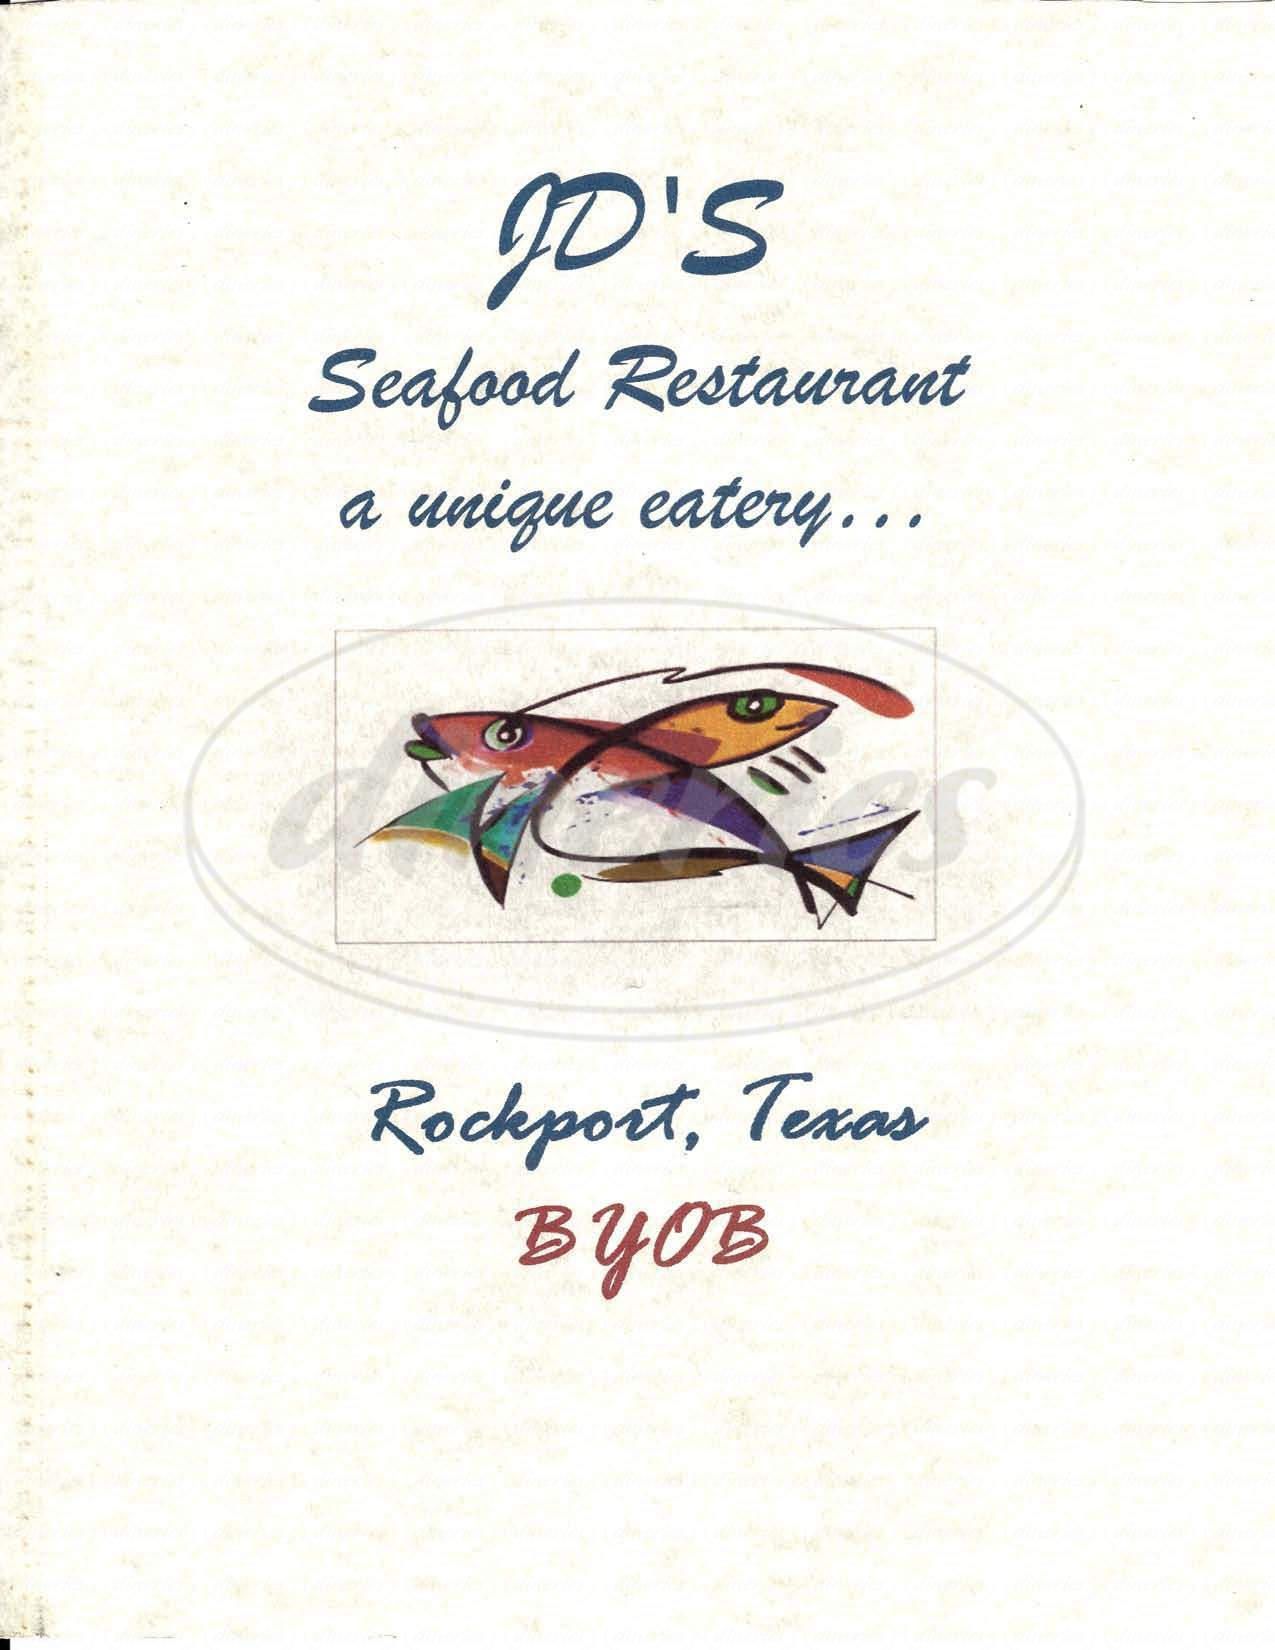 menu for JD's Seafood Restaurant